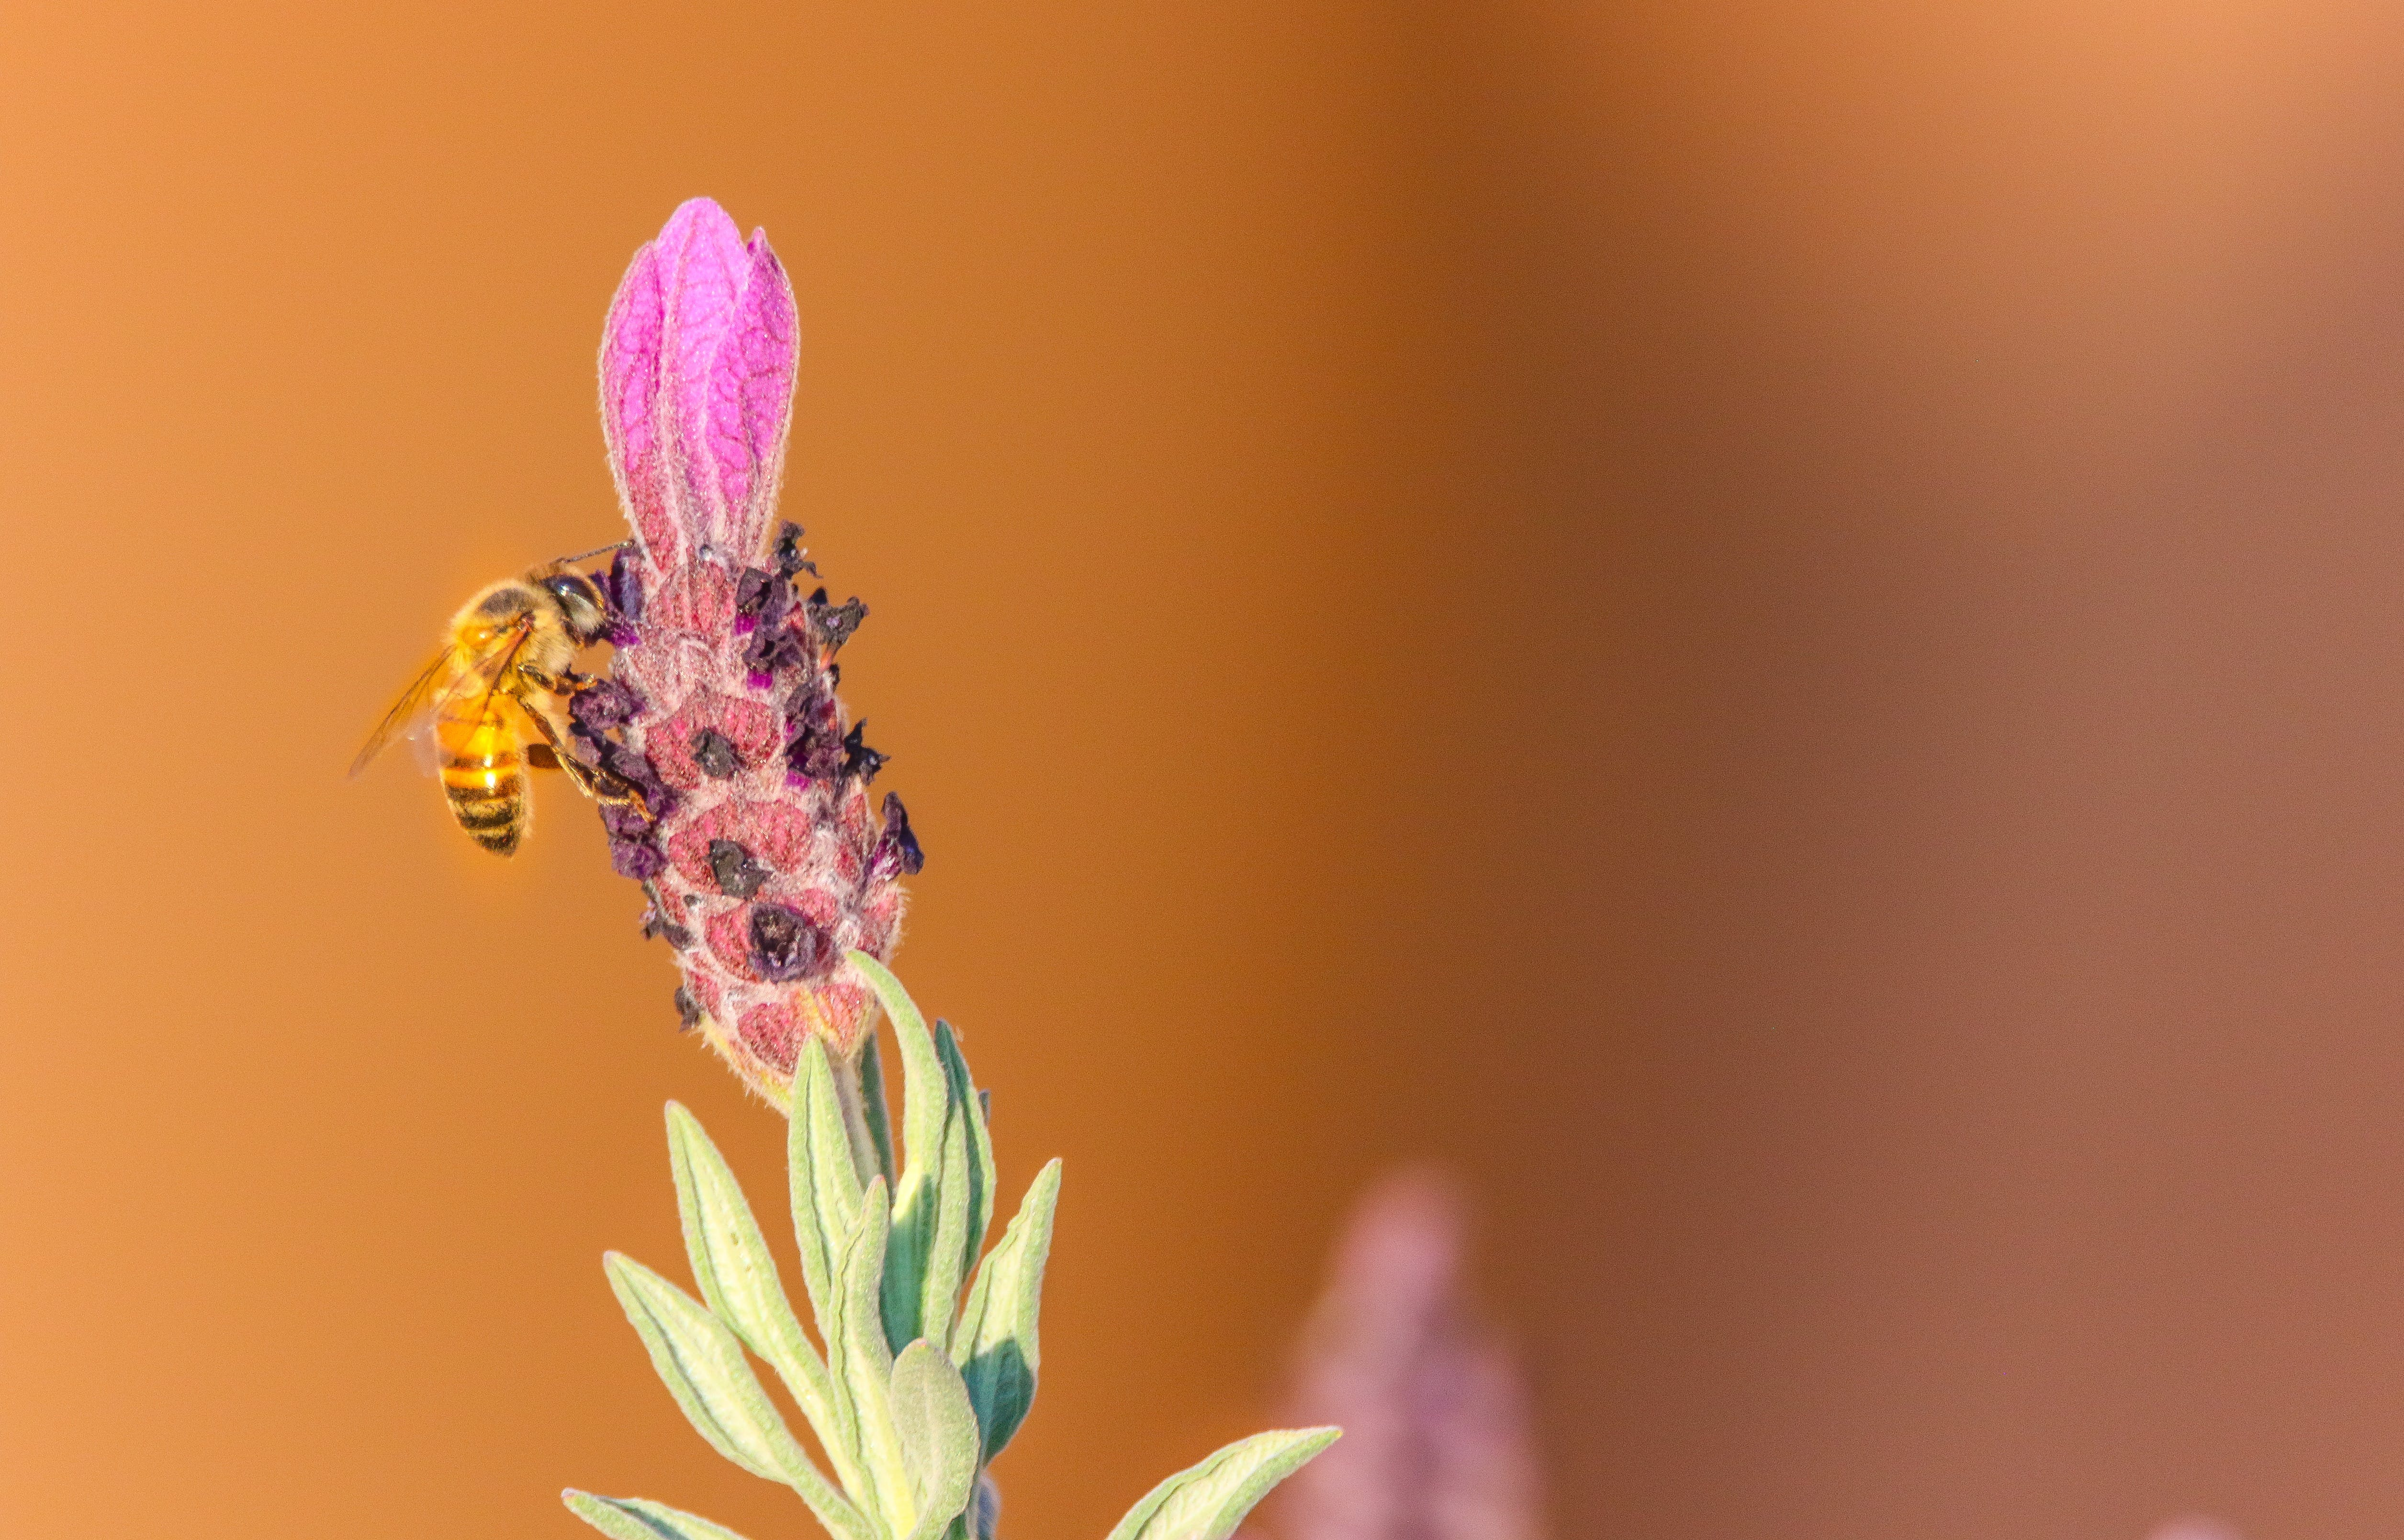 Selective Focus Photography Of Honeybee Perched On Purple Flower Bud